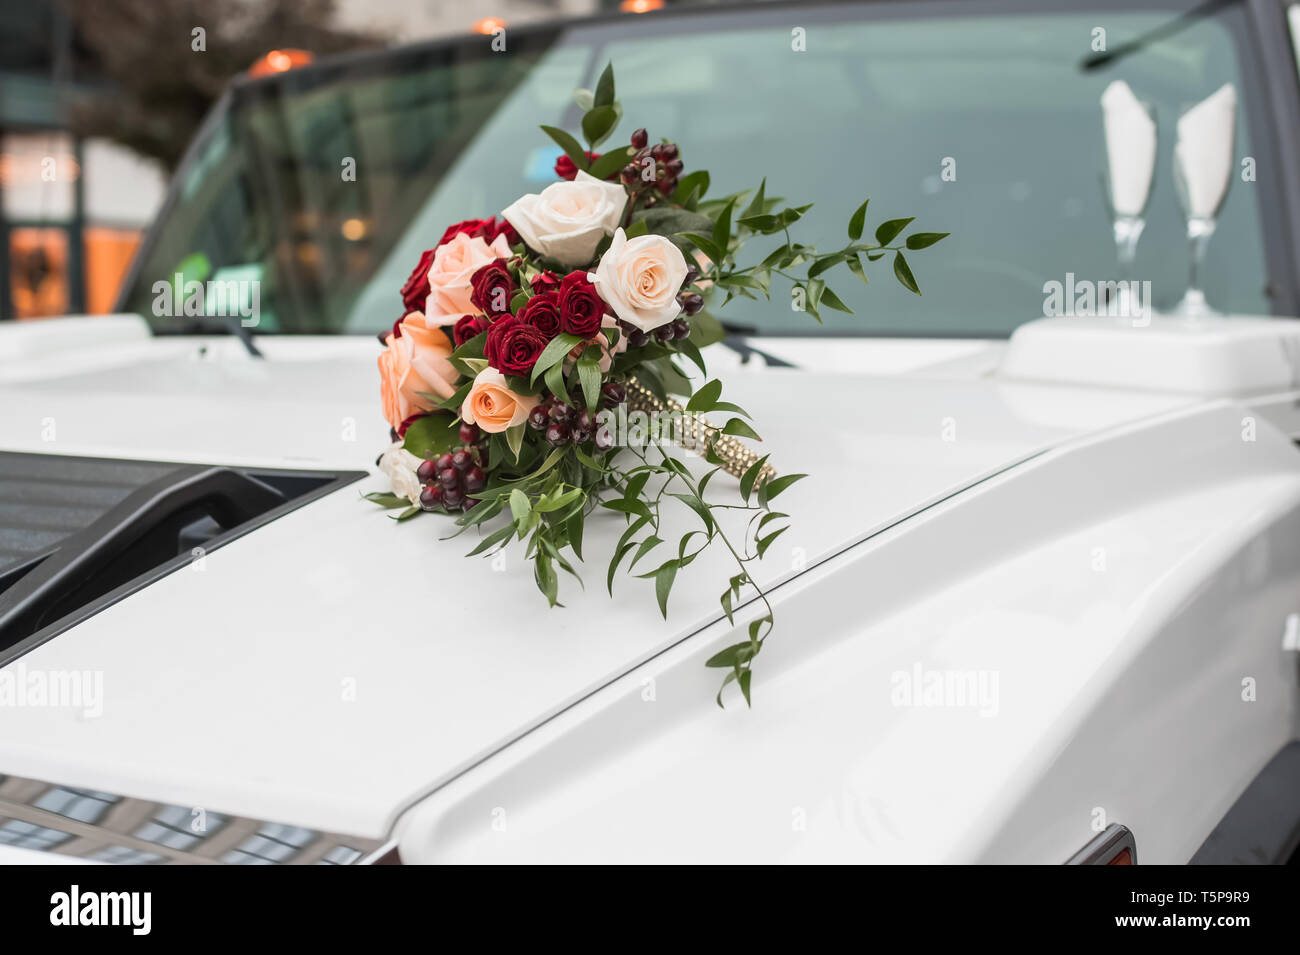 CREATIVE WEDDING IDEAS WITH AMAZING FLORAL DESIGNS, PERFECTLY DECORATED AND BEAMING WITH BEAUTIFUL MULTI-COLORS TO MAKE YOUR SPECIAL DAY WONDERFUL. - Stock Image